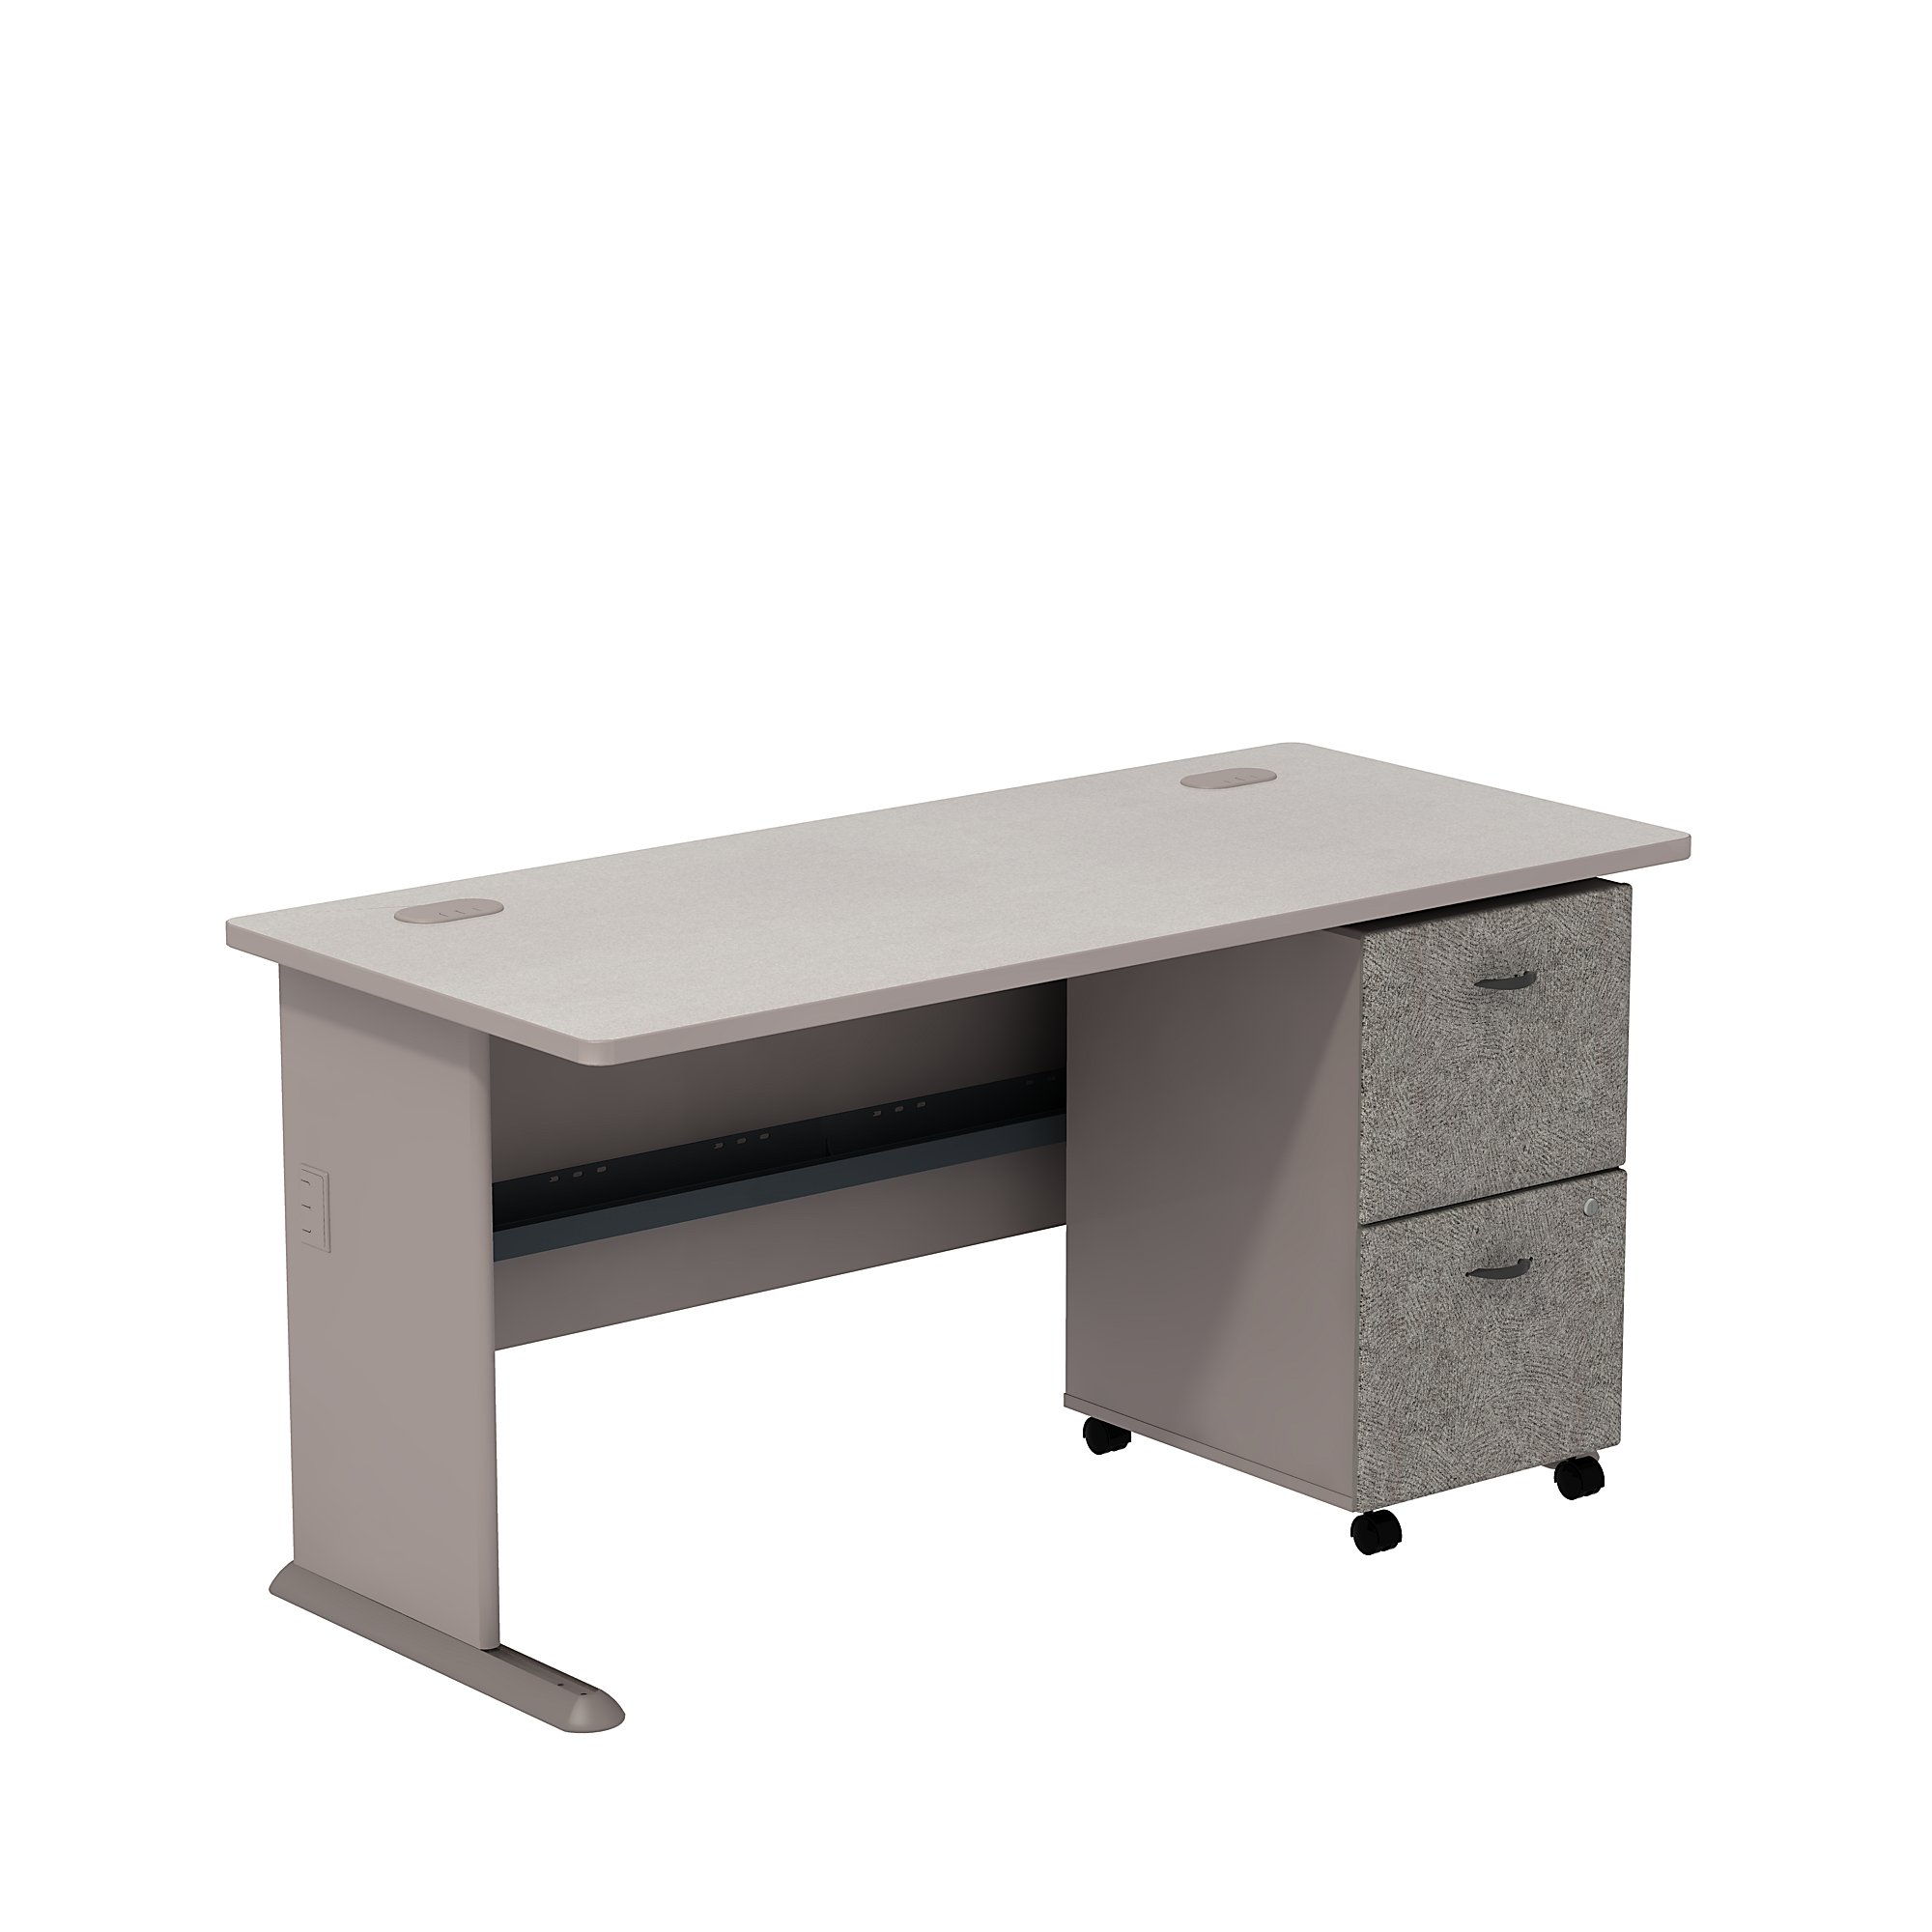 pewter series a desk with mobile pedestal